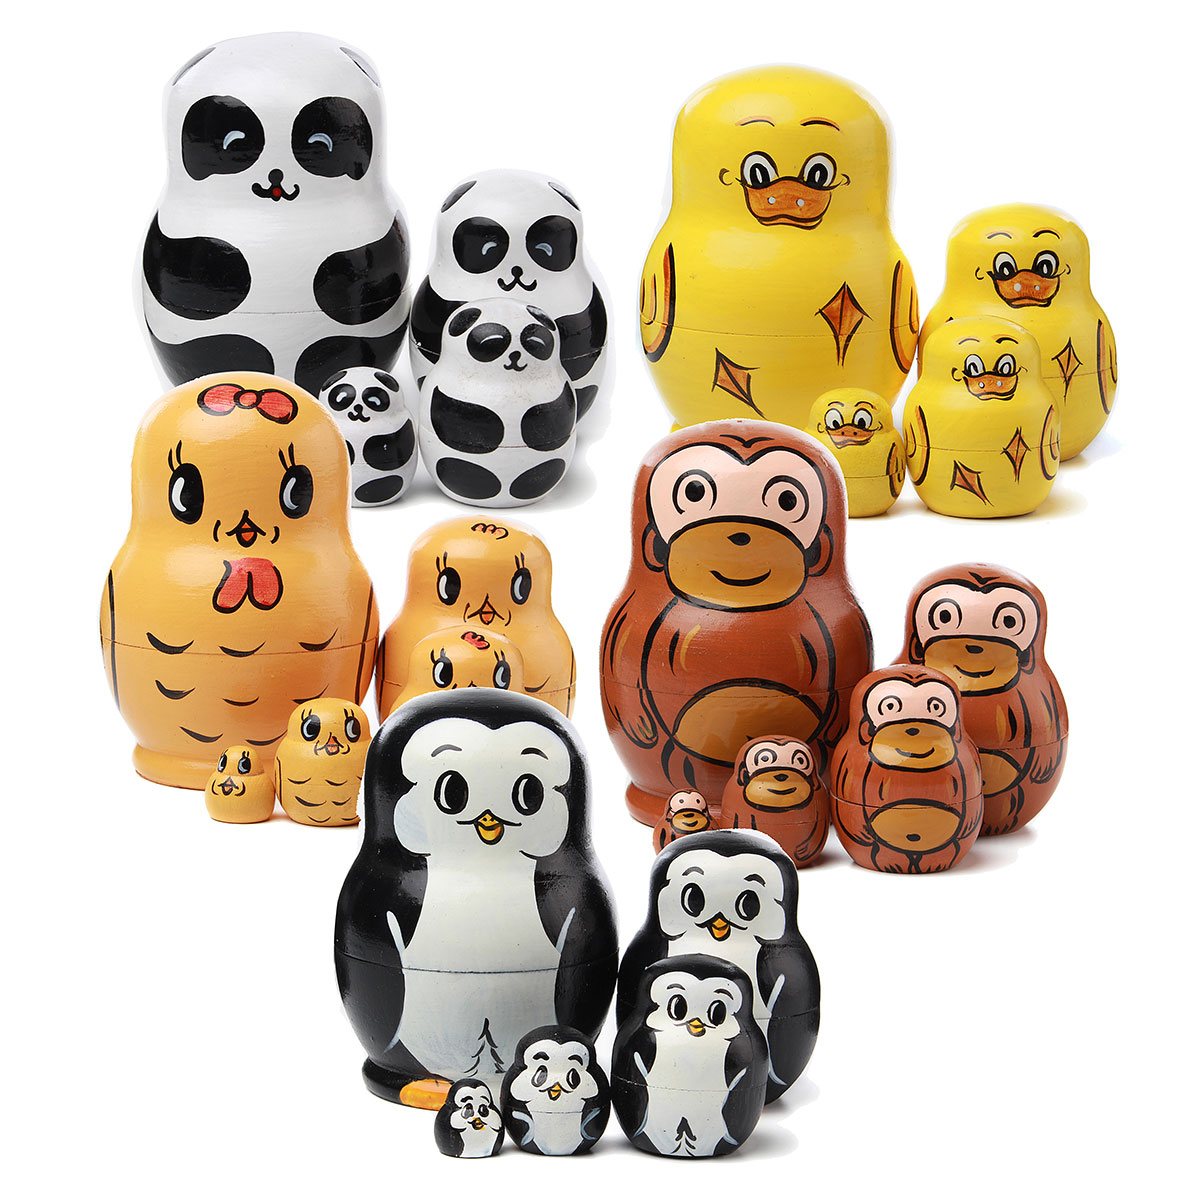 Gift Toys Dolls Decoration Nesting Panda-Hand Painted Kids Cute Wood for Children Hot-Sale